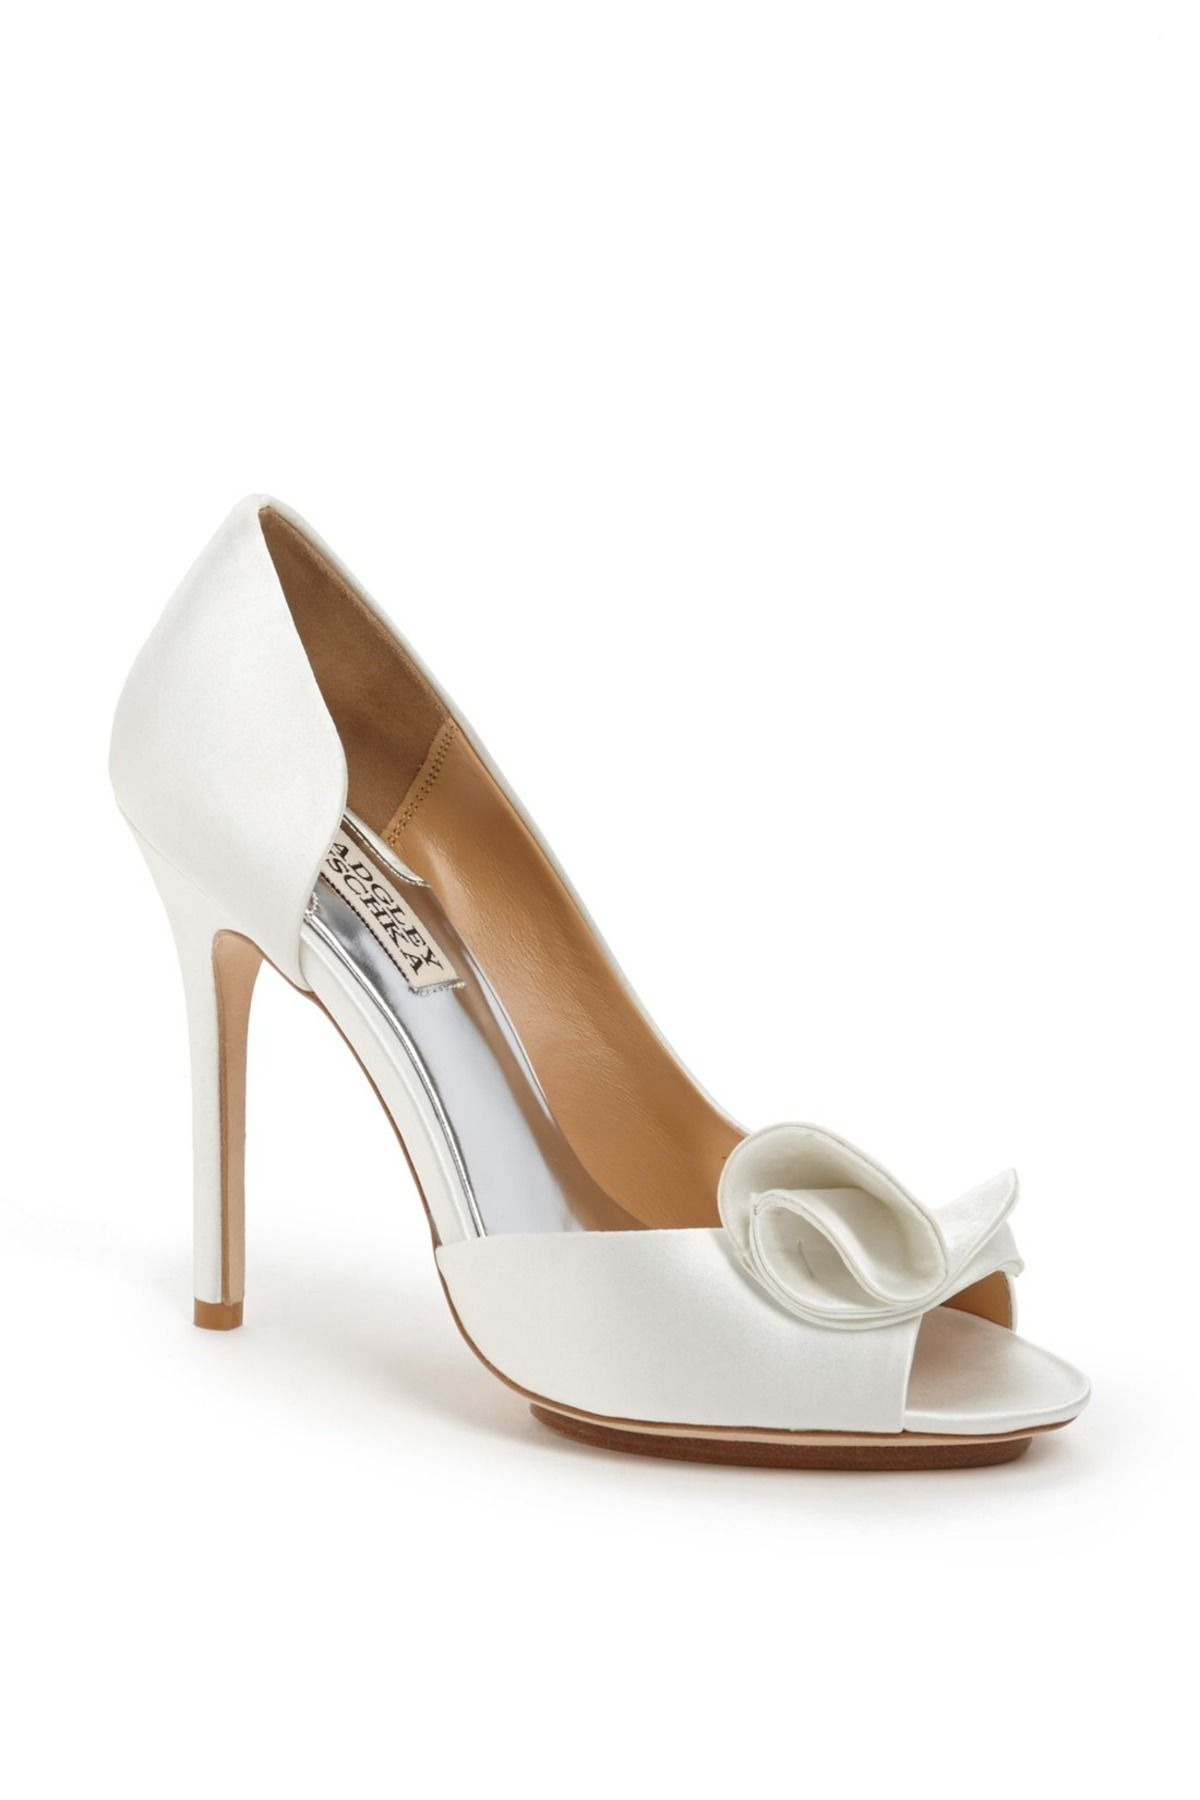 38++ Nordstrom wedding and evening shoes ideas